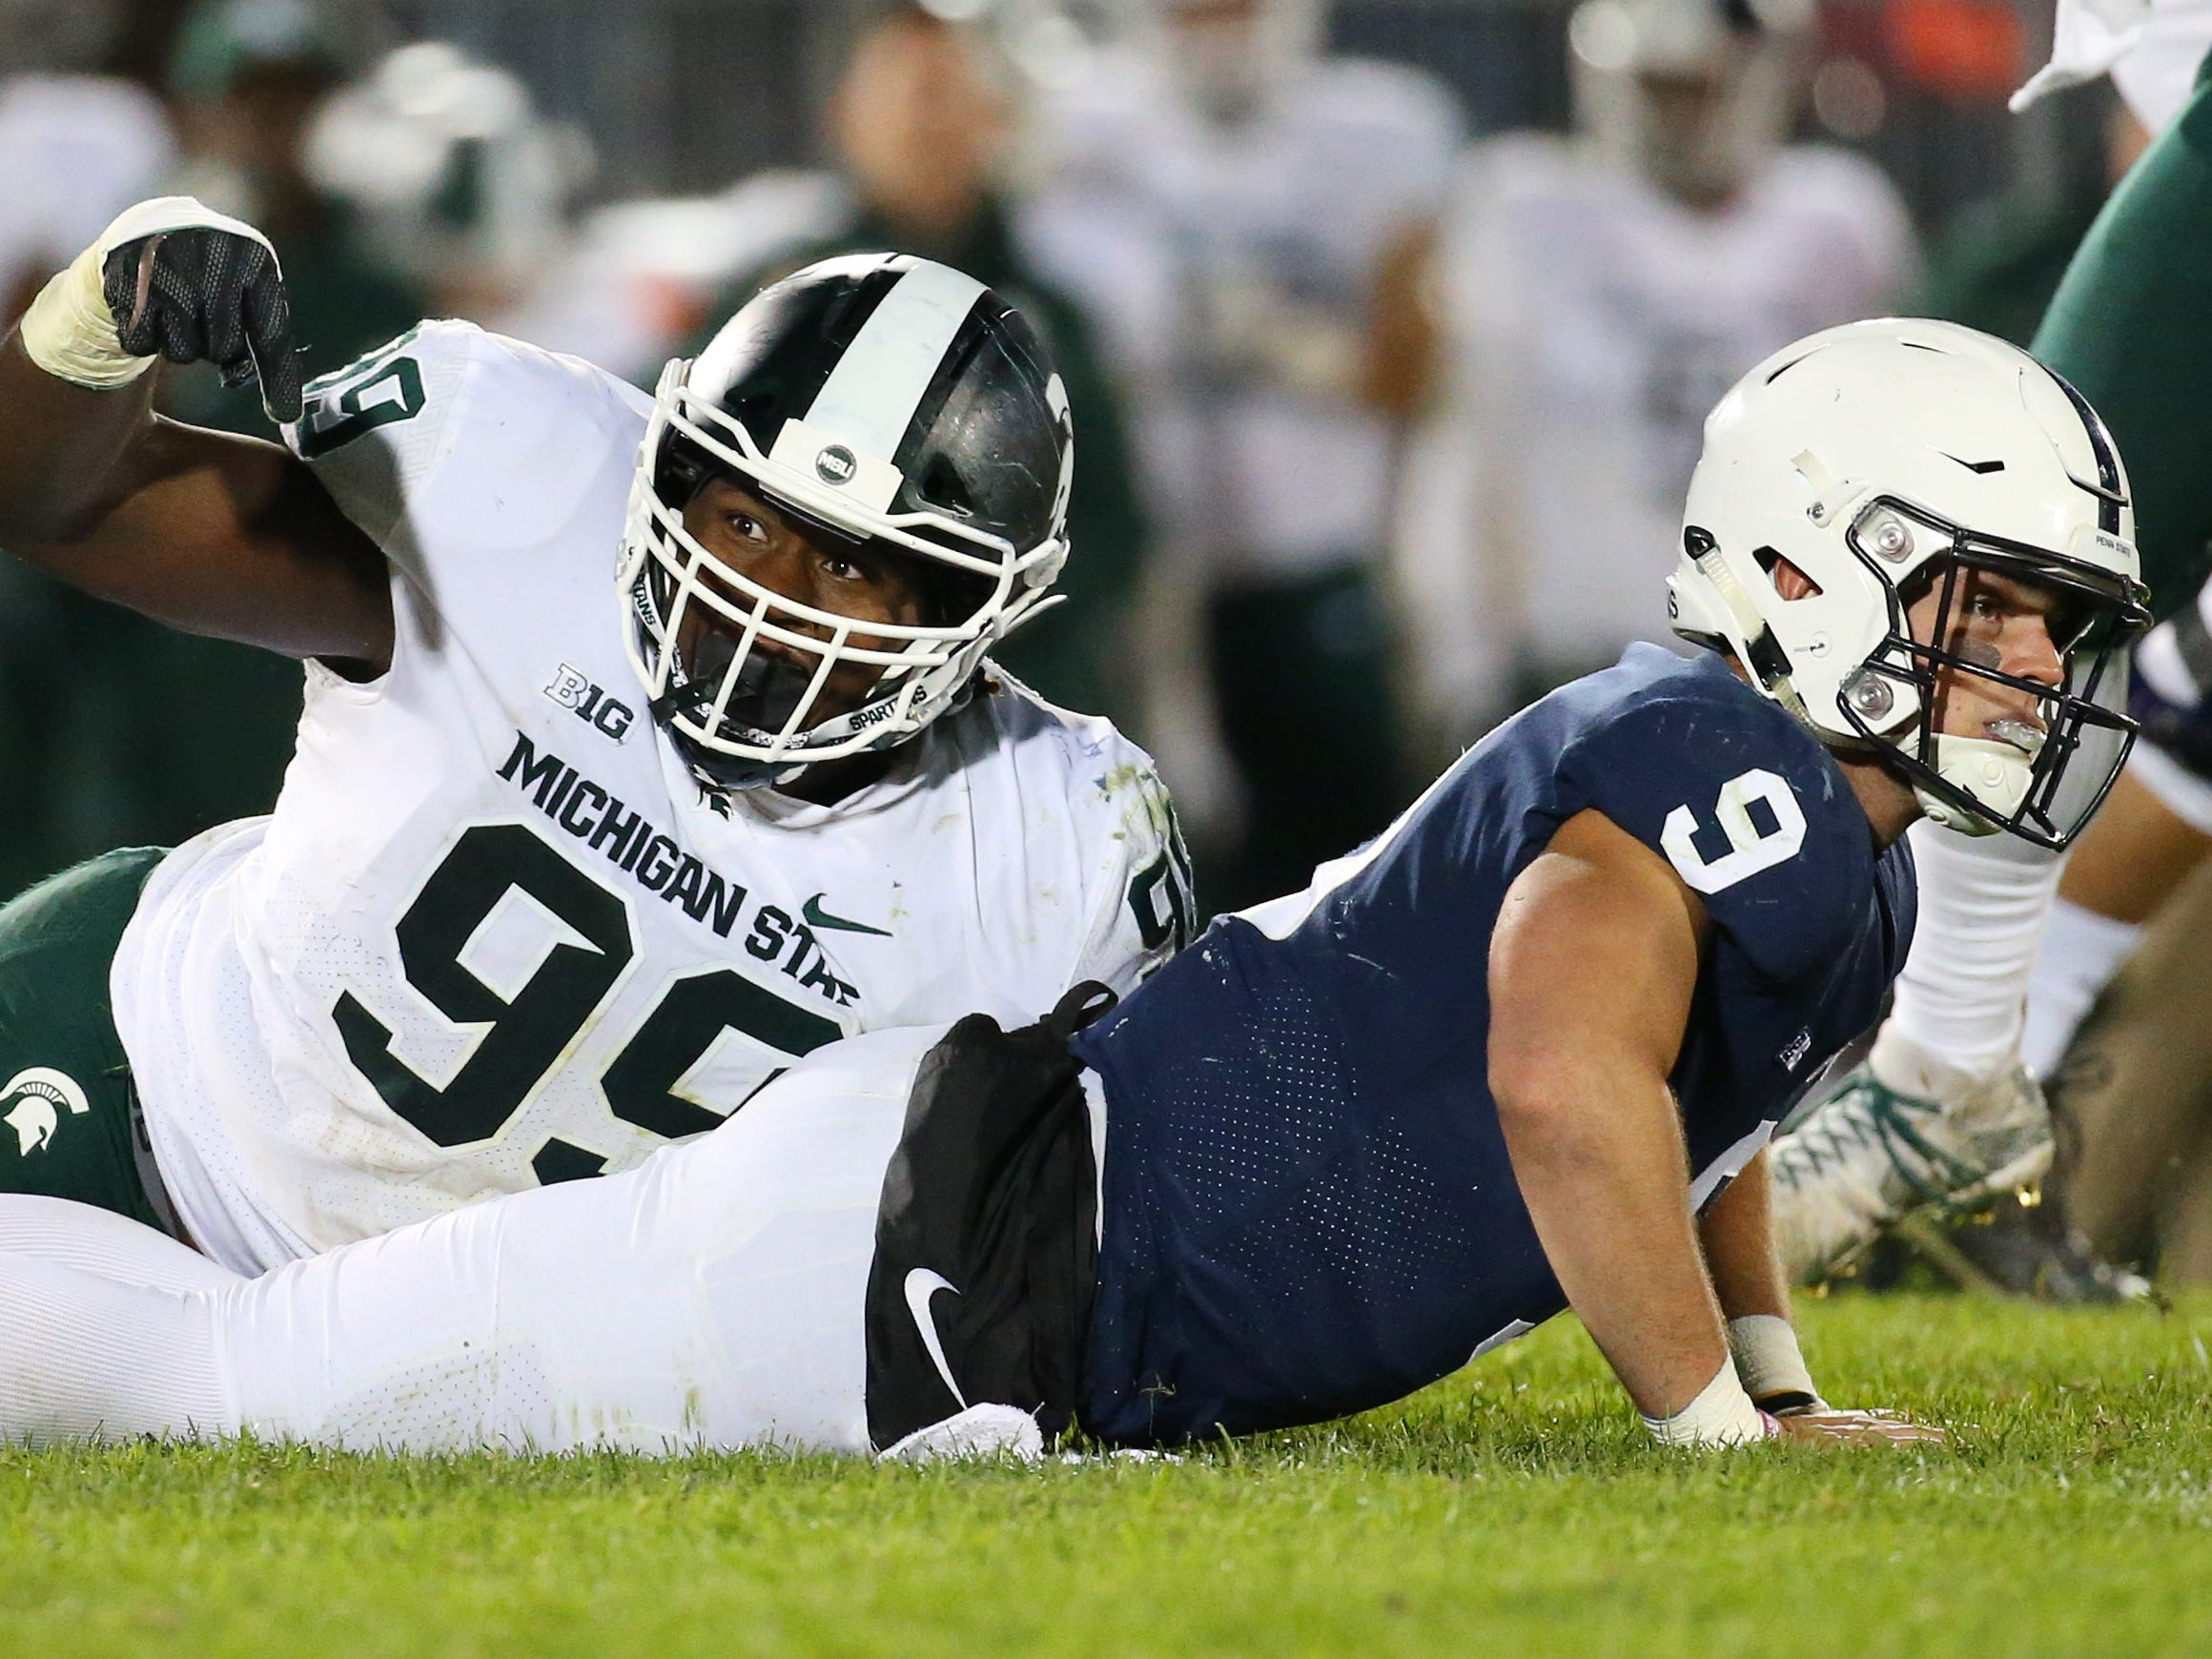 Michigan State defensive tackle Raequan Williams gestures to an official after pressuring Penn State quarterback Trace McSorley during the fourth quarter at Beaver Stadium, Oct. 13, 2018.